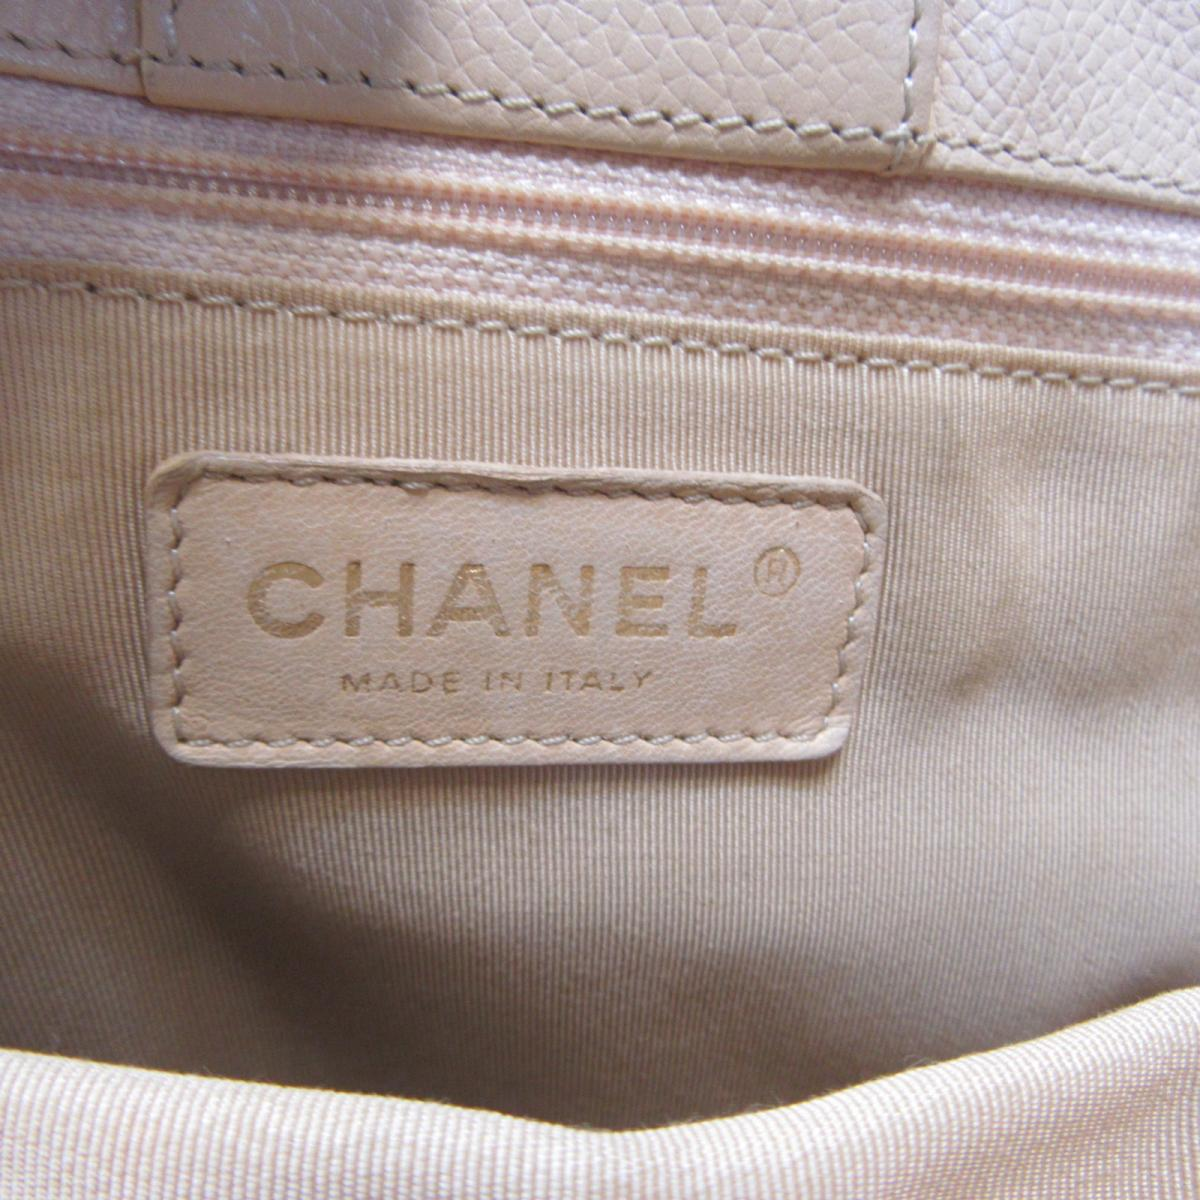 CHANEL バッグ  米色荔枝紋牛皮雙層肩背包 Cerf Executive Tote Bag